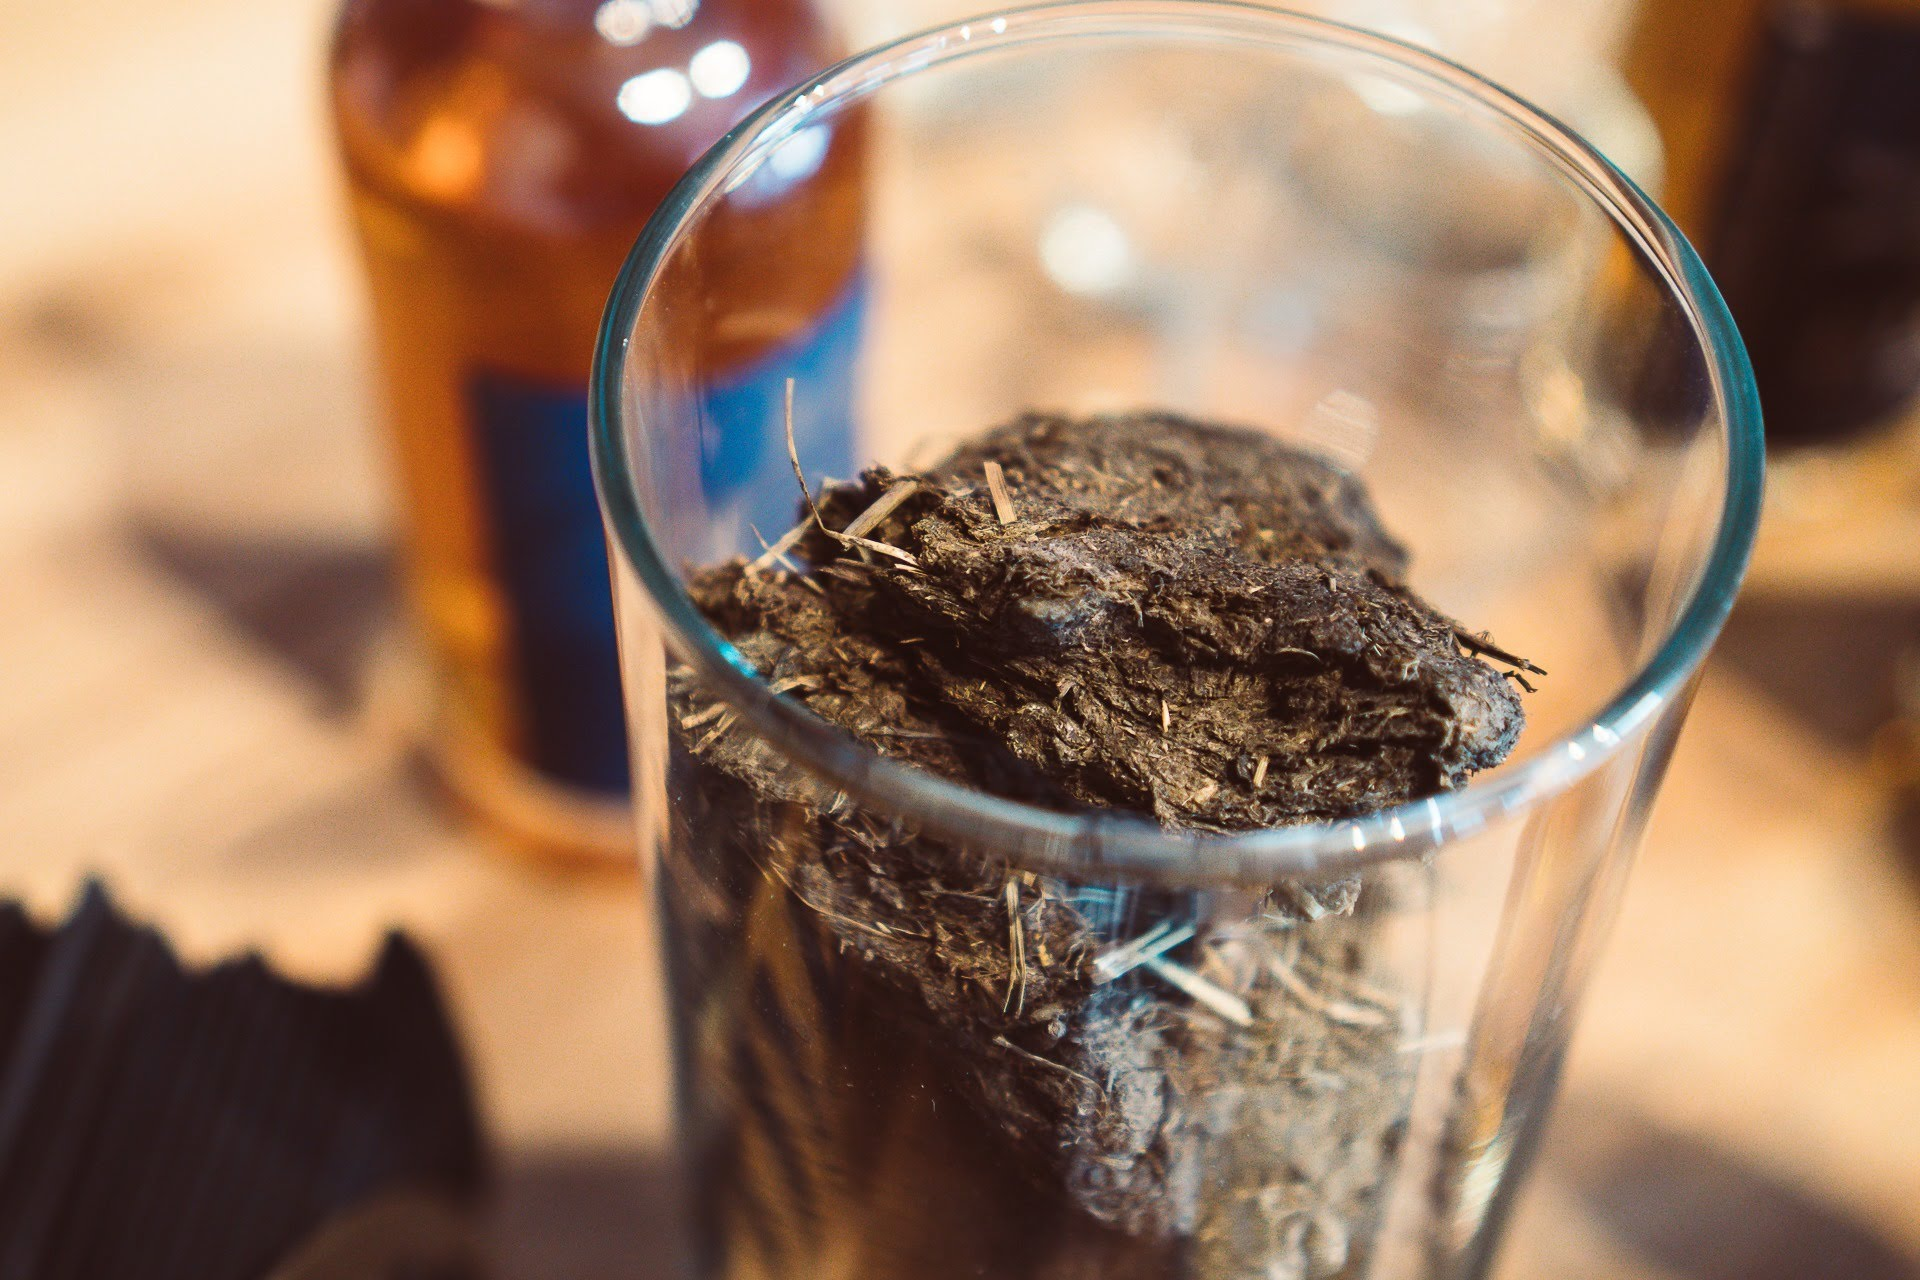 Will the Next Great Whisky Come From Iceland?